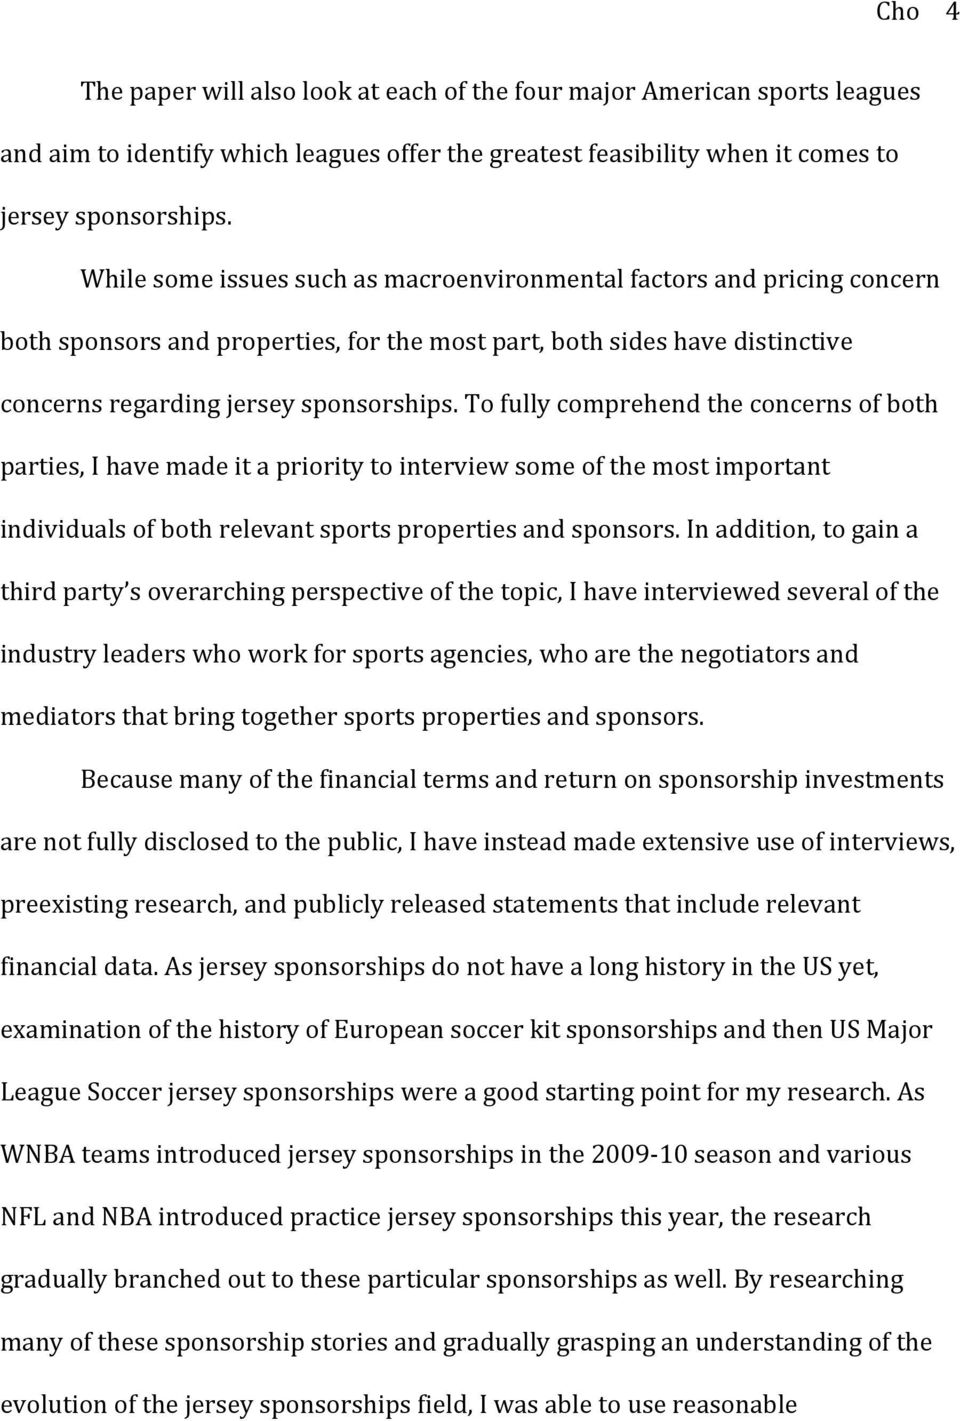 To fully comprehend the concerns of both parties, I have made it a priority to interview some of the most important individuals of both relevant sports properties and sponsors.